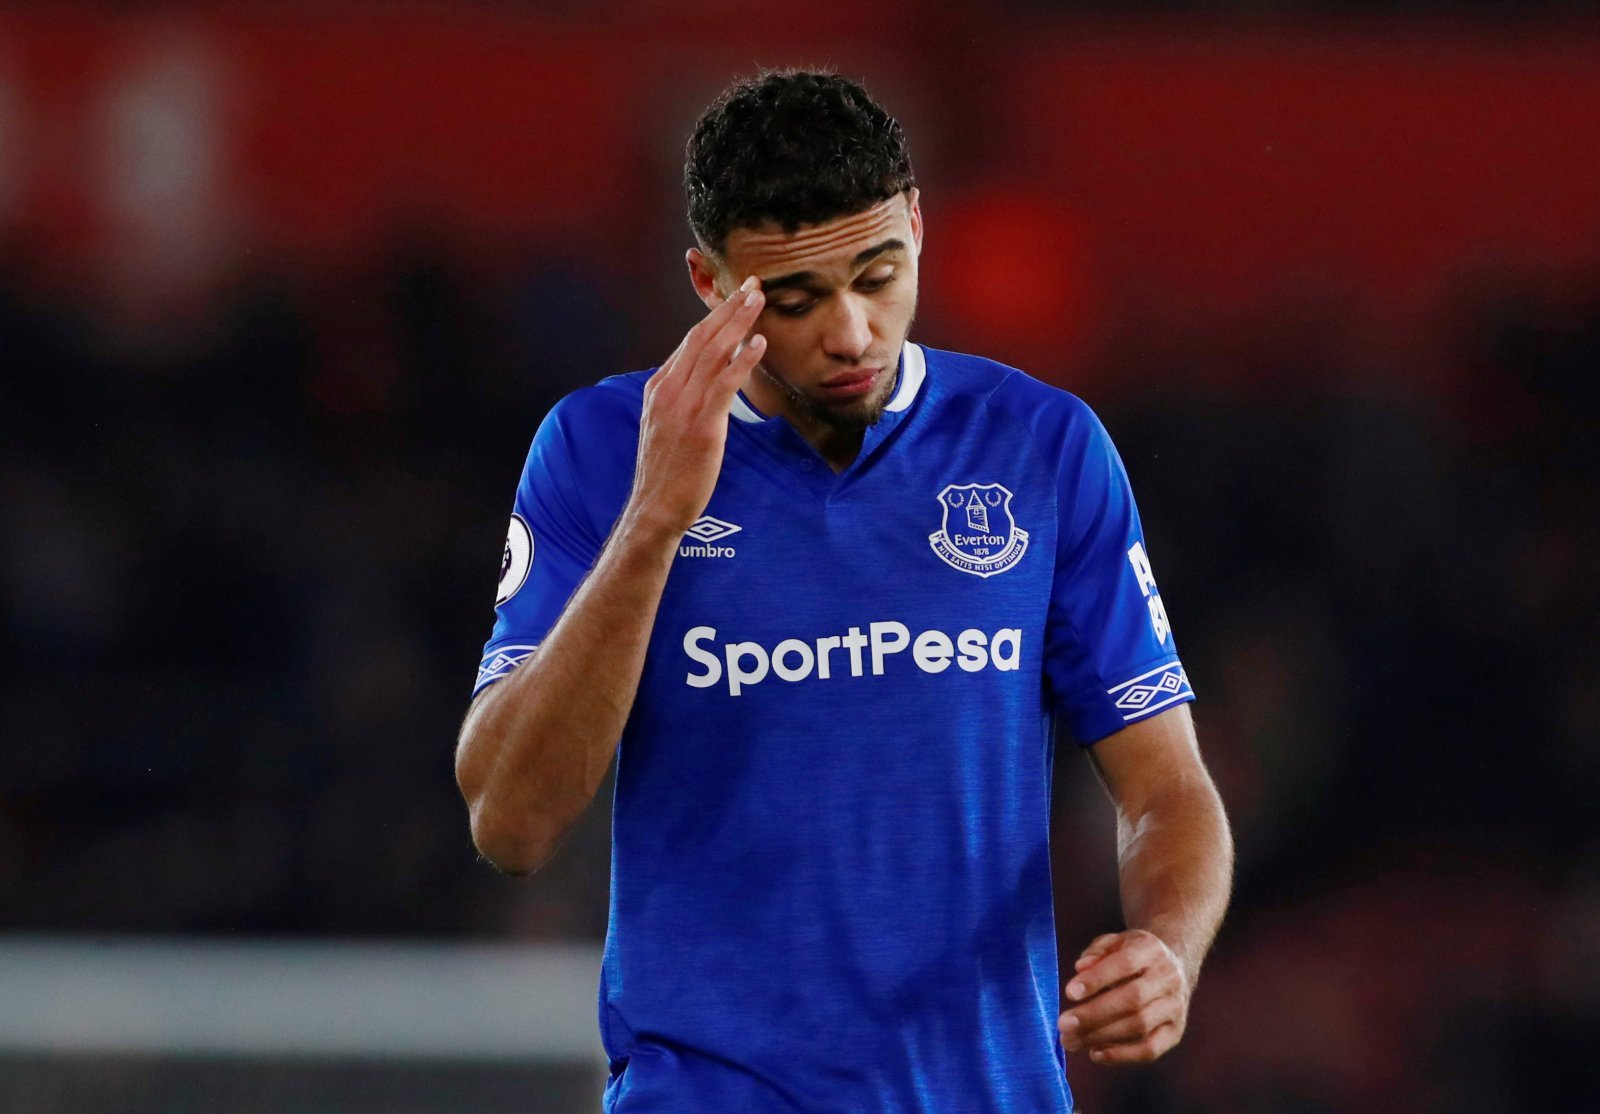 Everton: Dominic Calvert-Lewin opens up over 'extremely disappointing' 3-2 Brighton loss